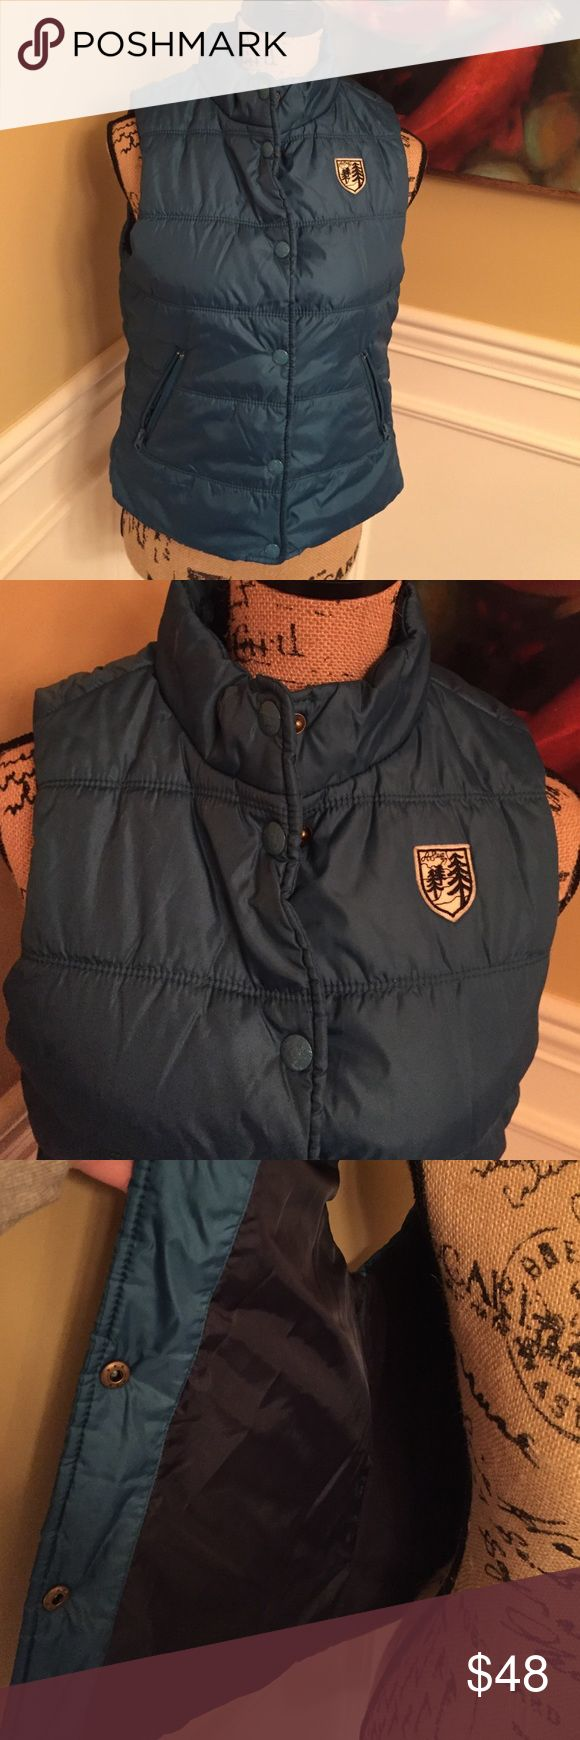 American Eagle Outfitters puffer vest in teal Size medium teal color and in great shape American Eagle Outfitters Jackets & Coats Vests